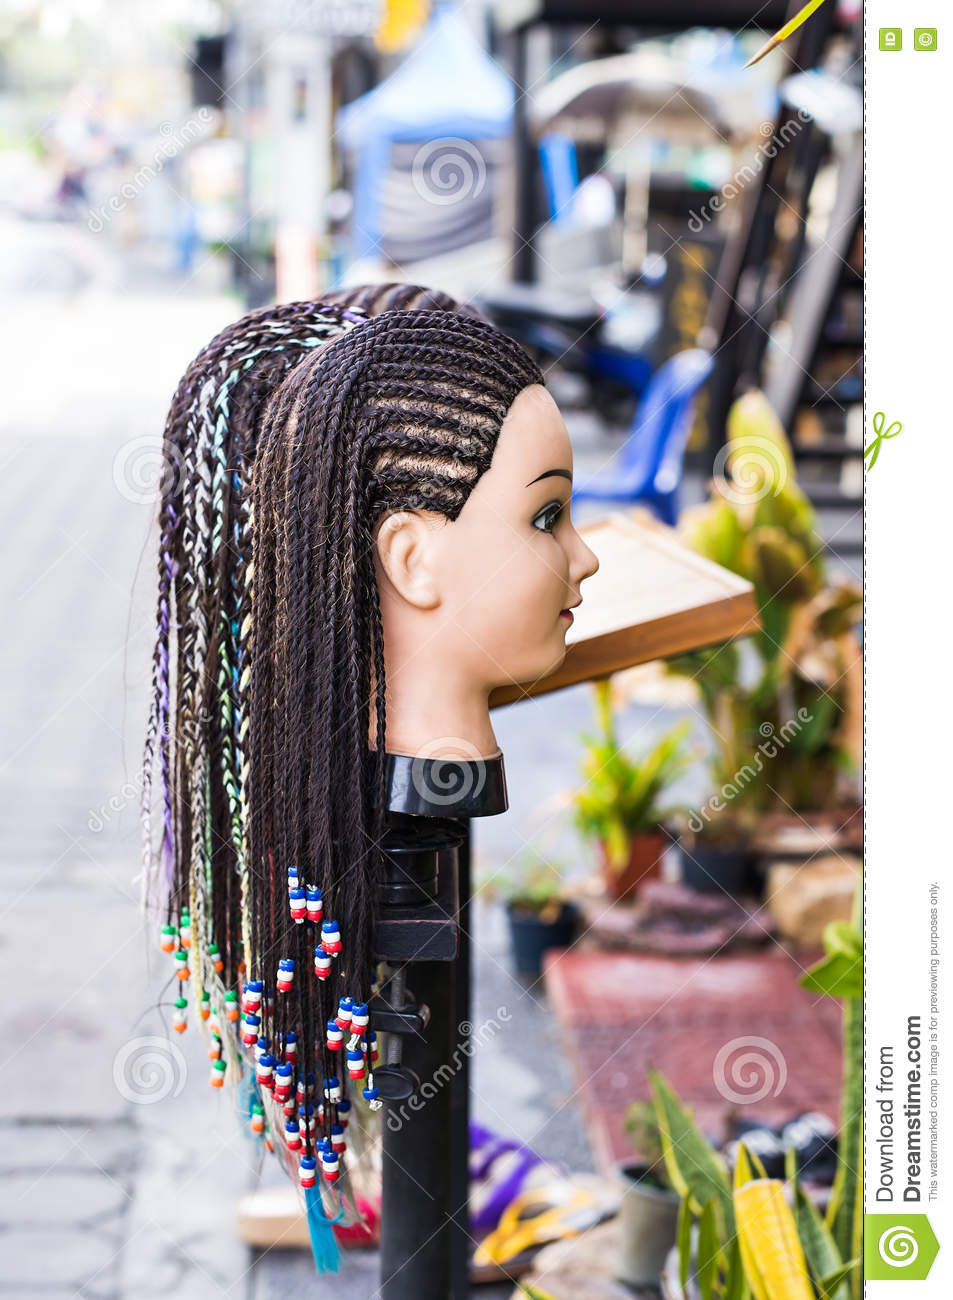 Marvelous Female Mannequin Head With Braided Pigtails Hairstyle Decorated Hairstyle Inspiration Daily Dogsangcom